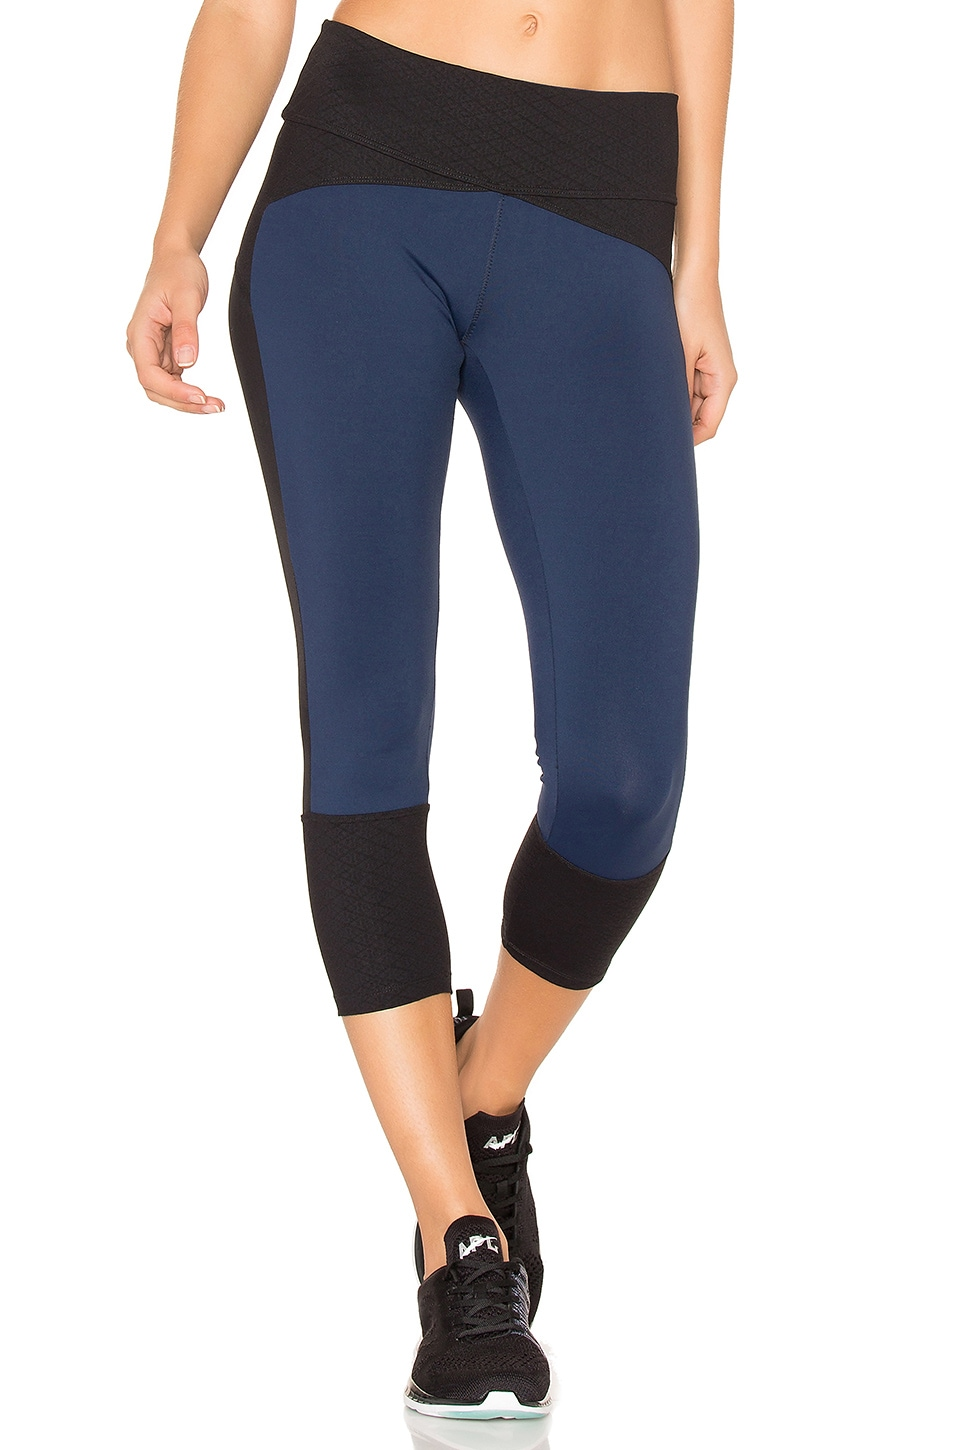 3/4 Mirage Leggings by Track & Bliss